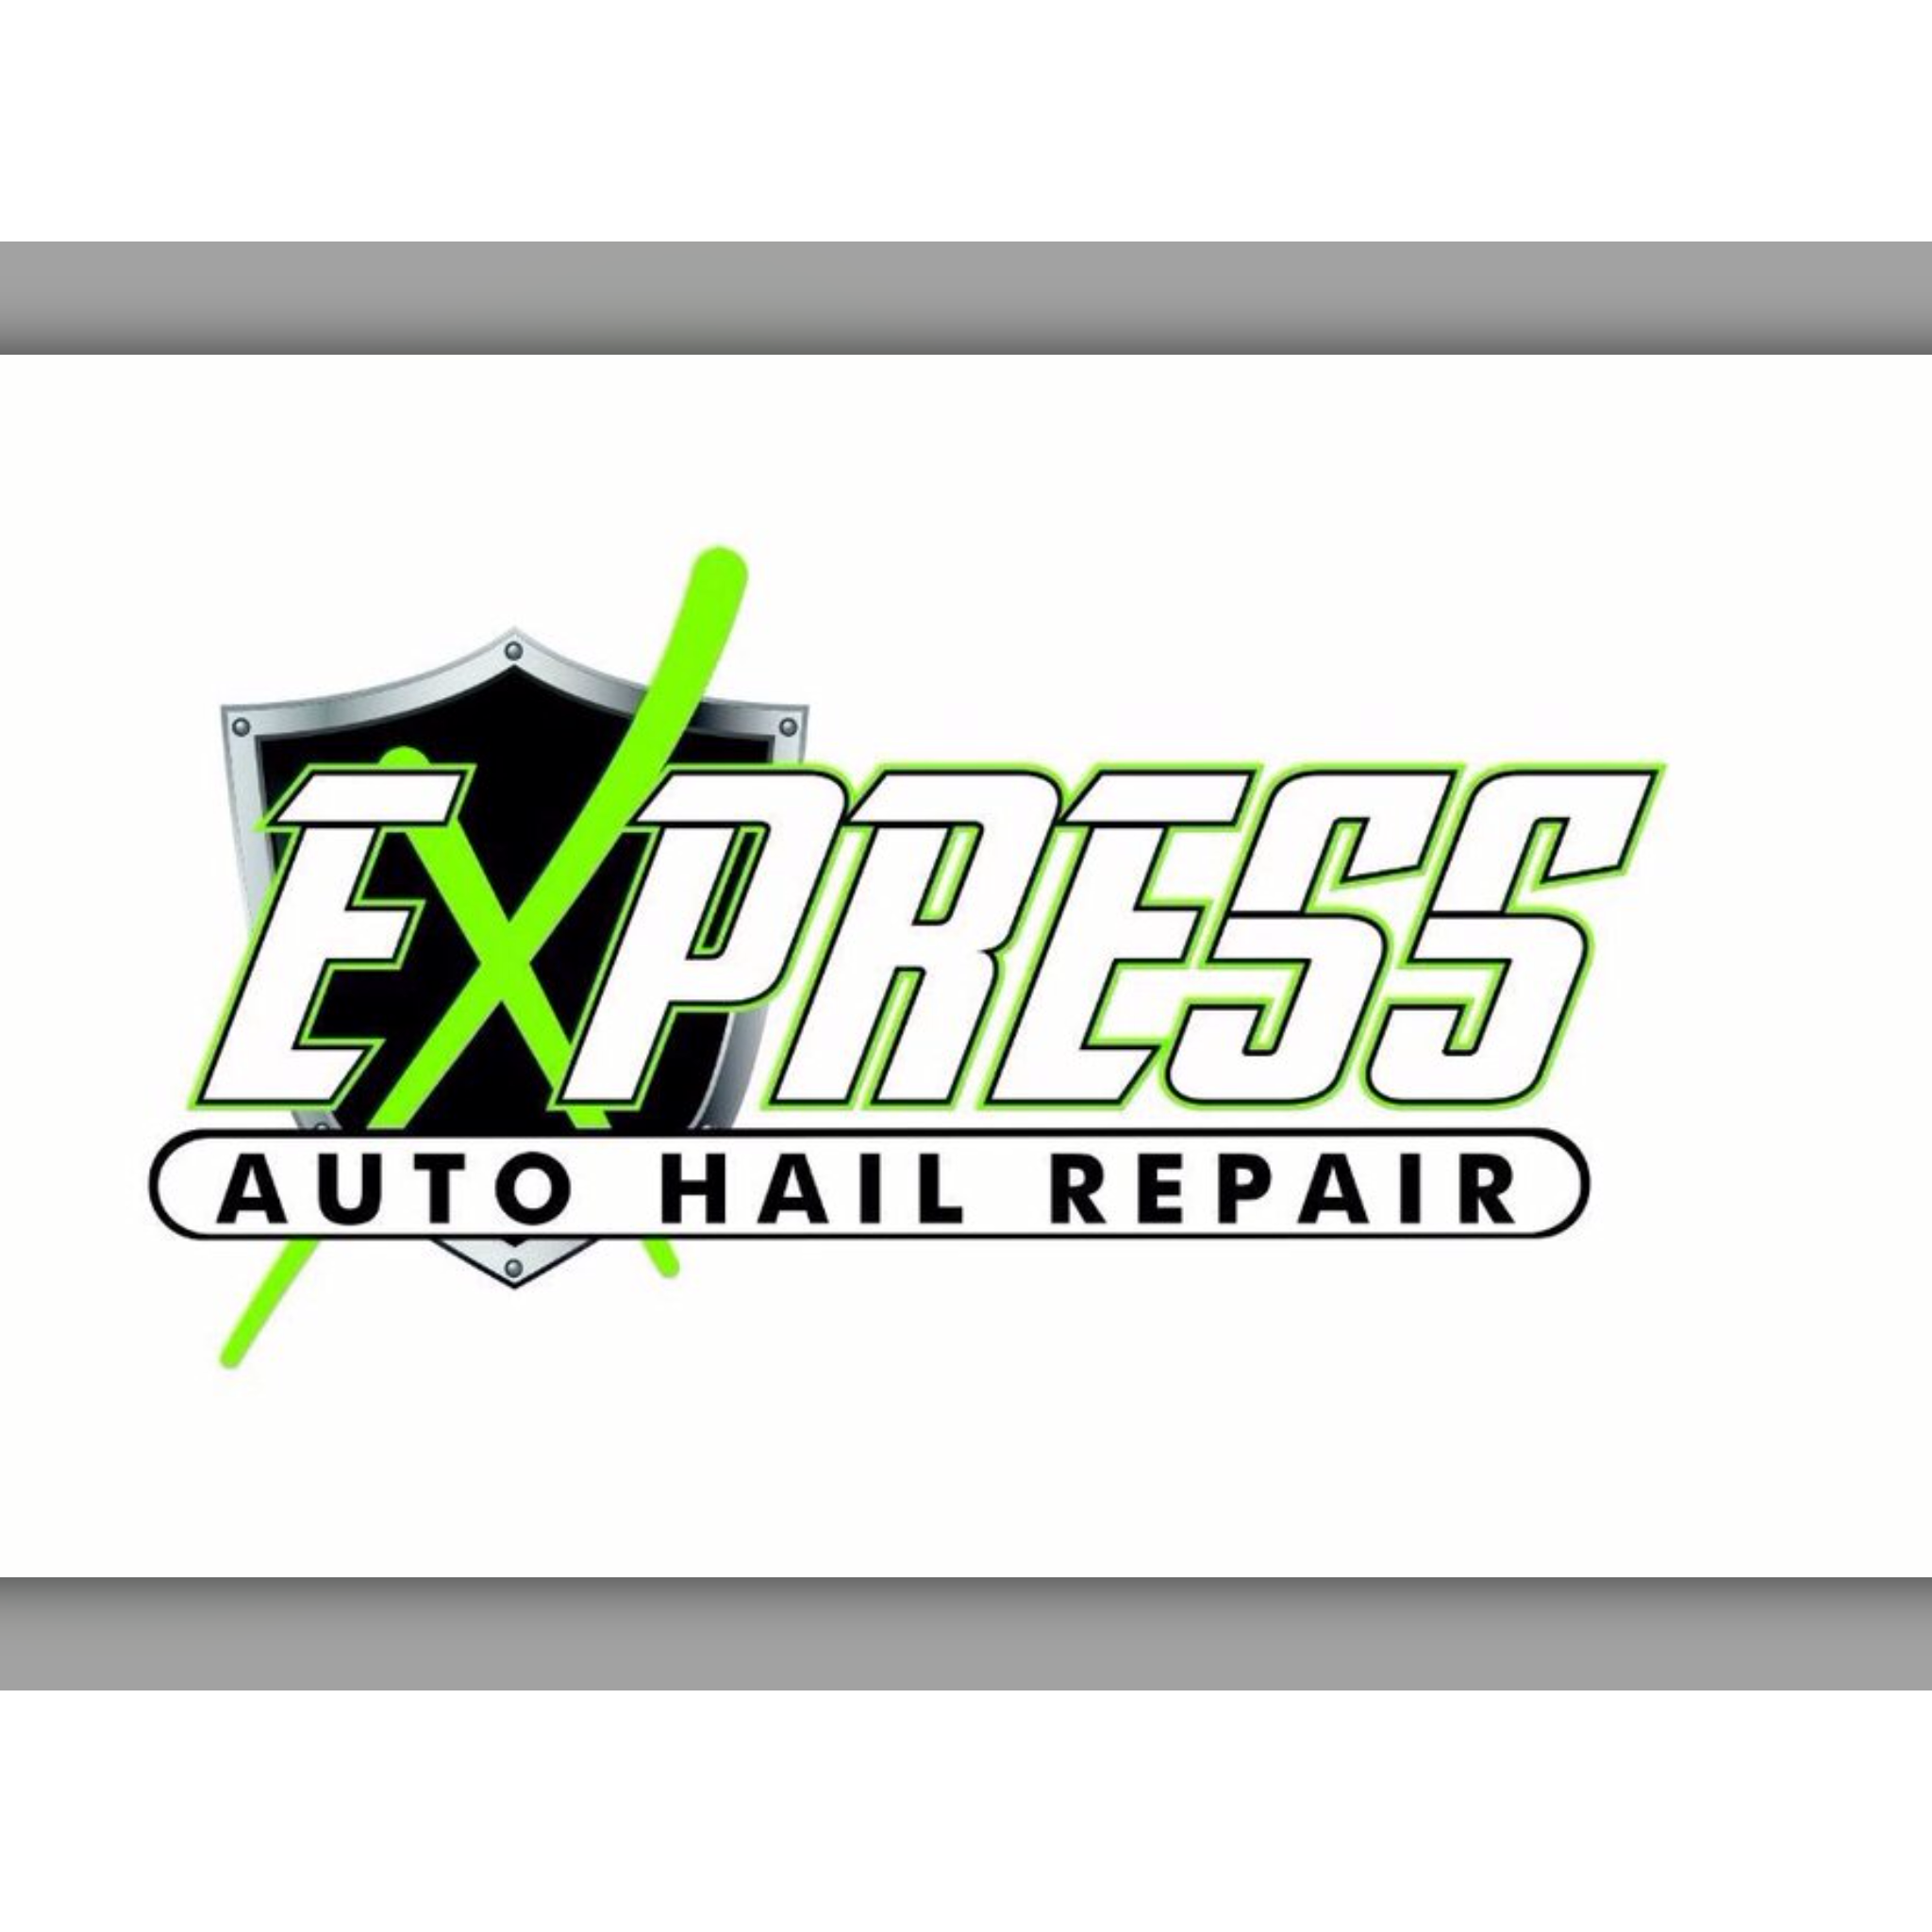 Express Auto Hail Repair